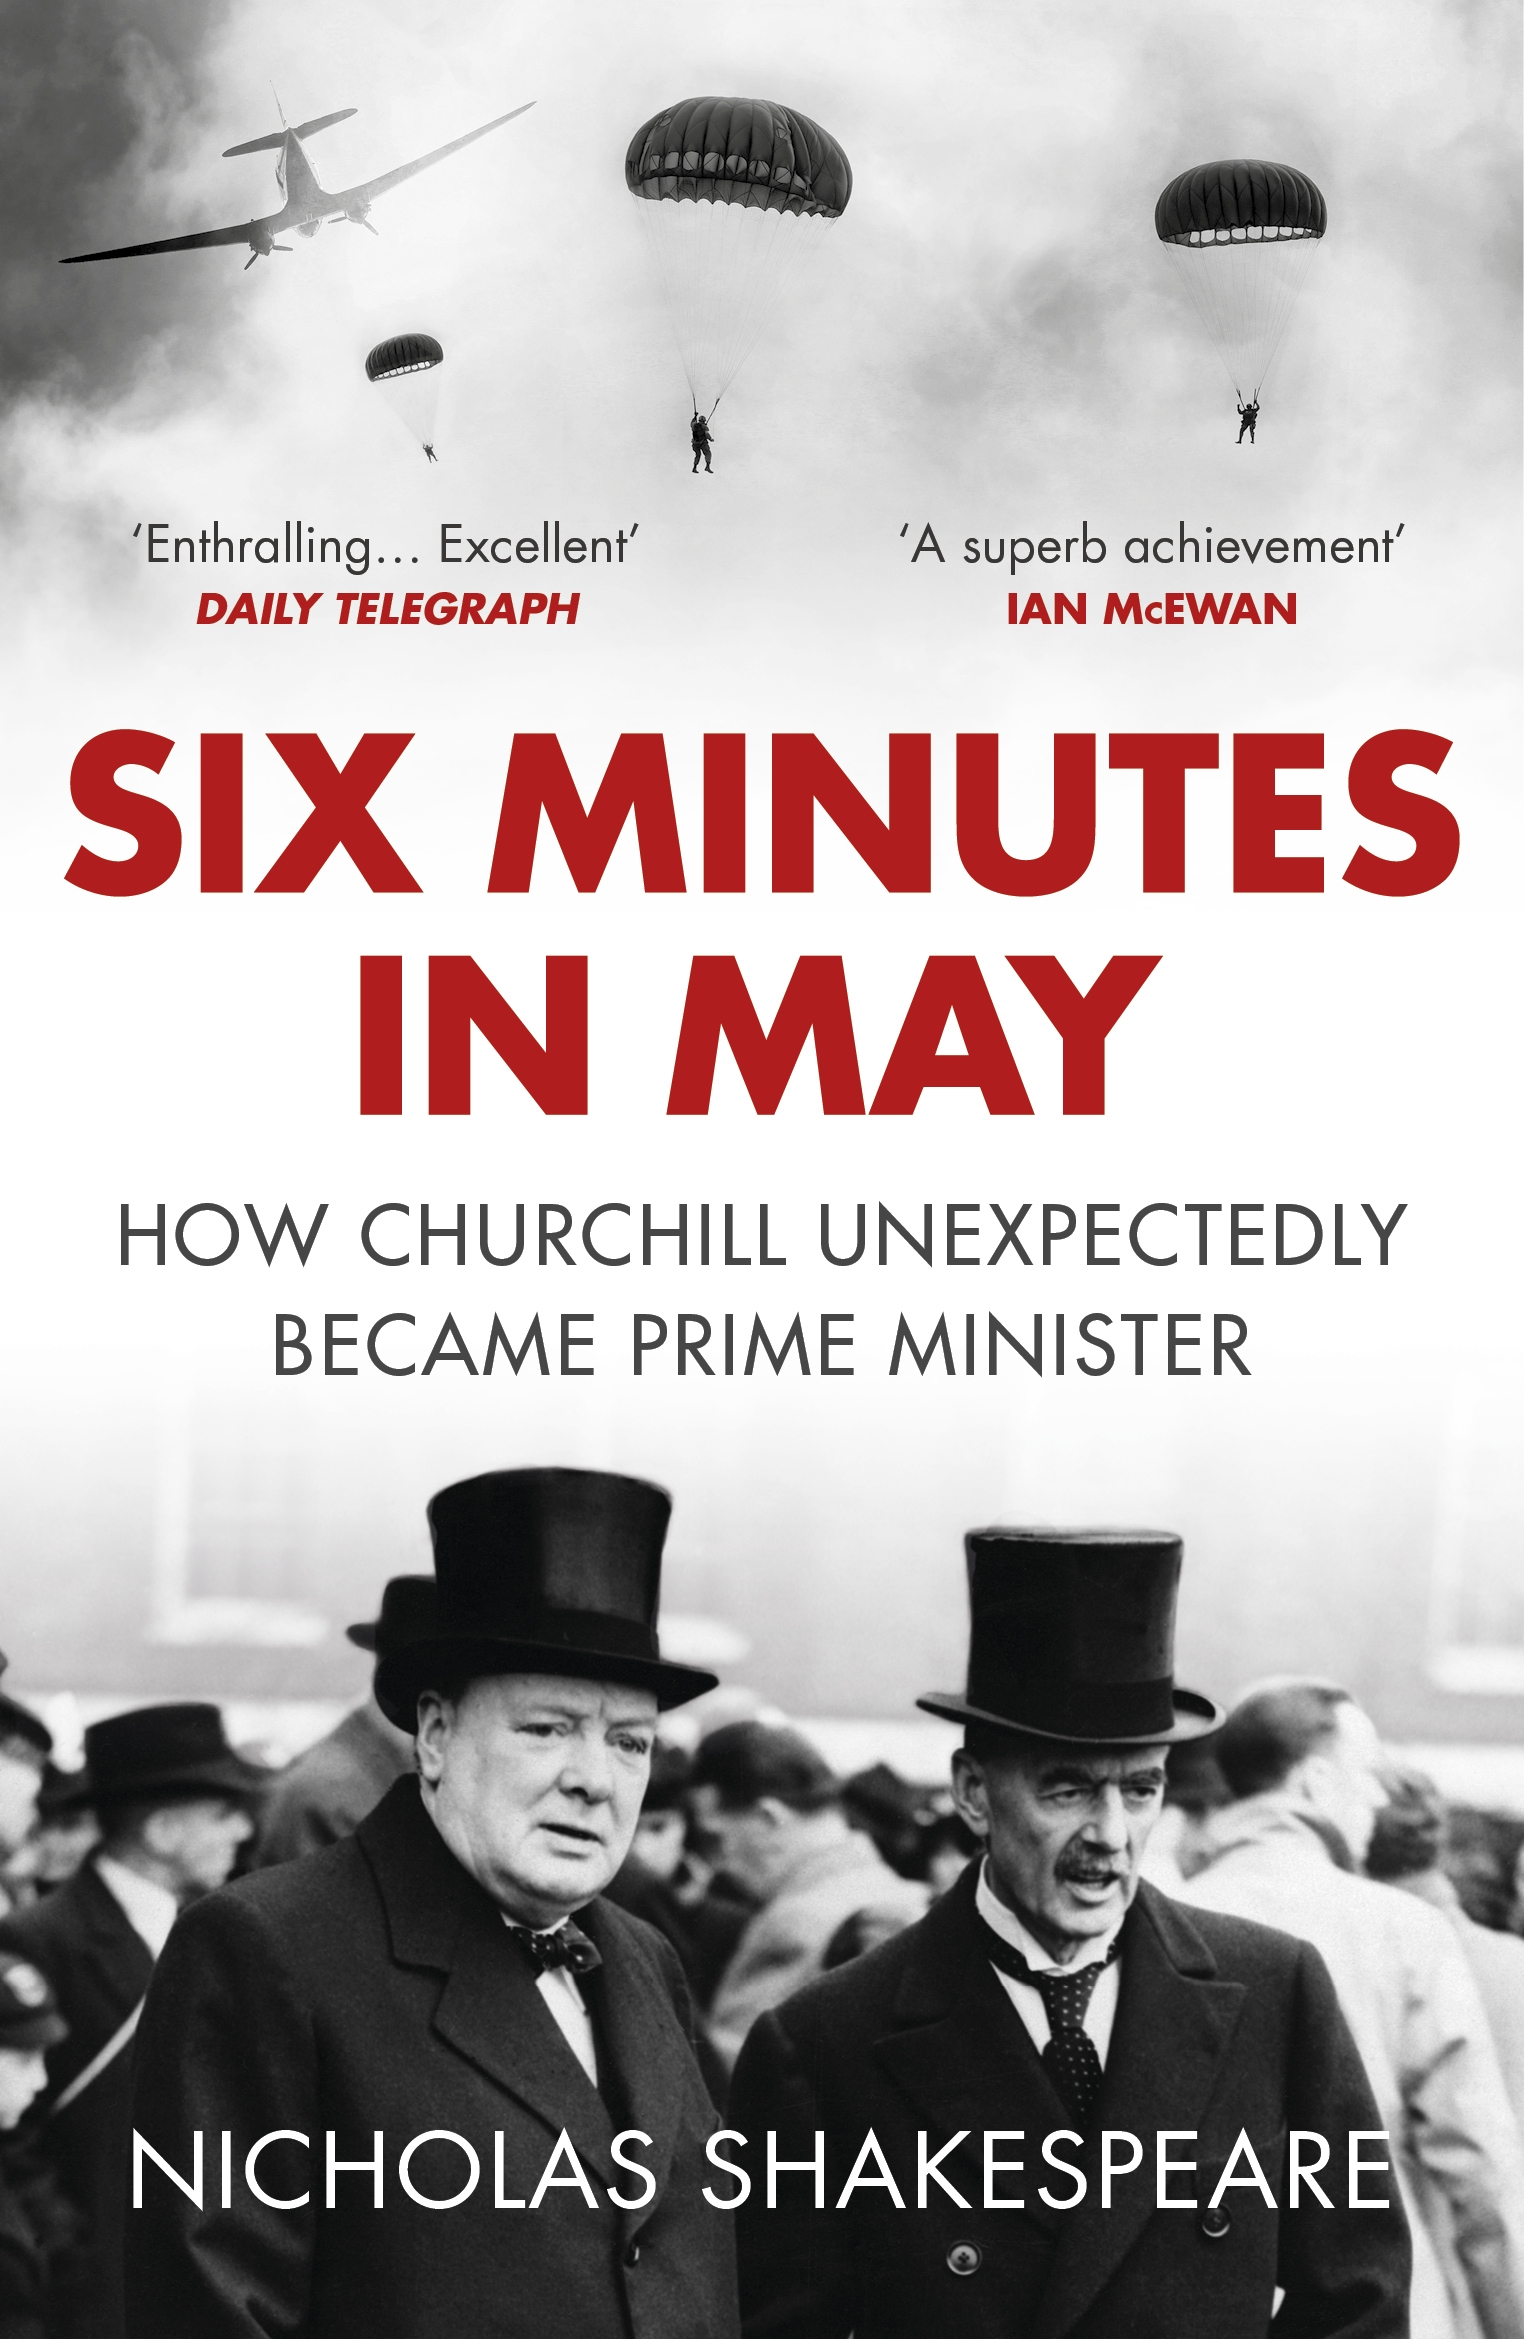 Six minutes in may by nicholas shakespeare penguin books australia hi res cover fandeluxe Choice Image